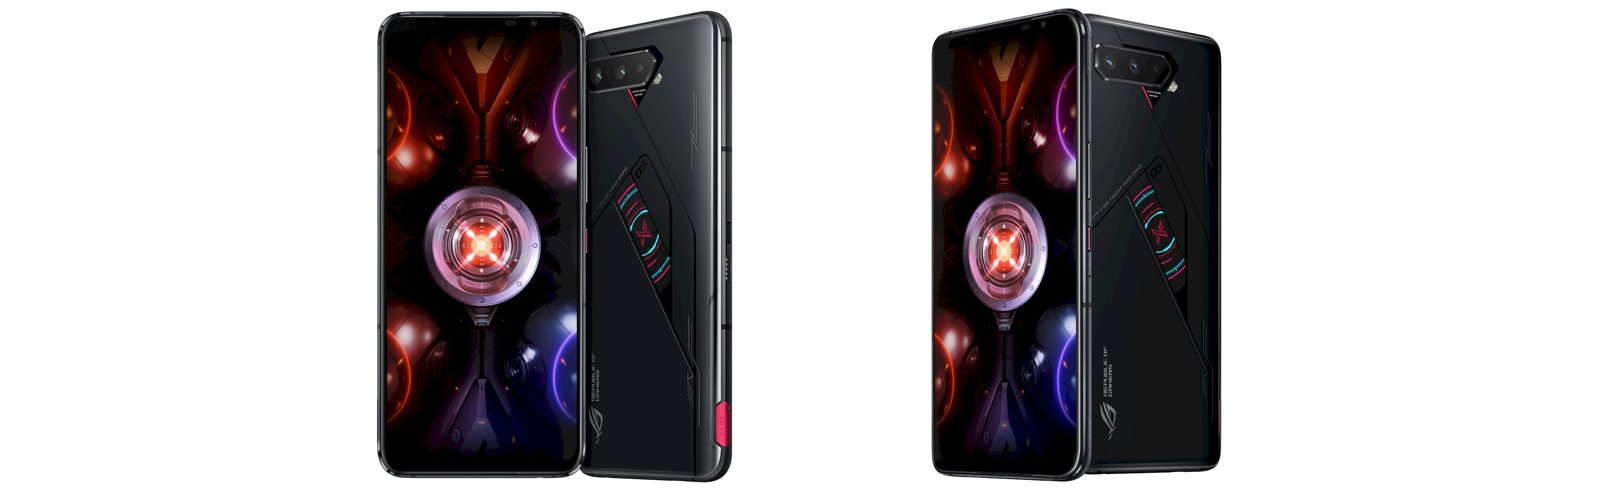 Asus ROG Phone 5s and ROG Phone 5s Pro go official with Snapdragon 888+ chipset